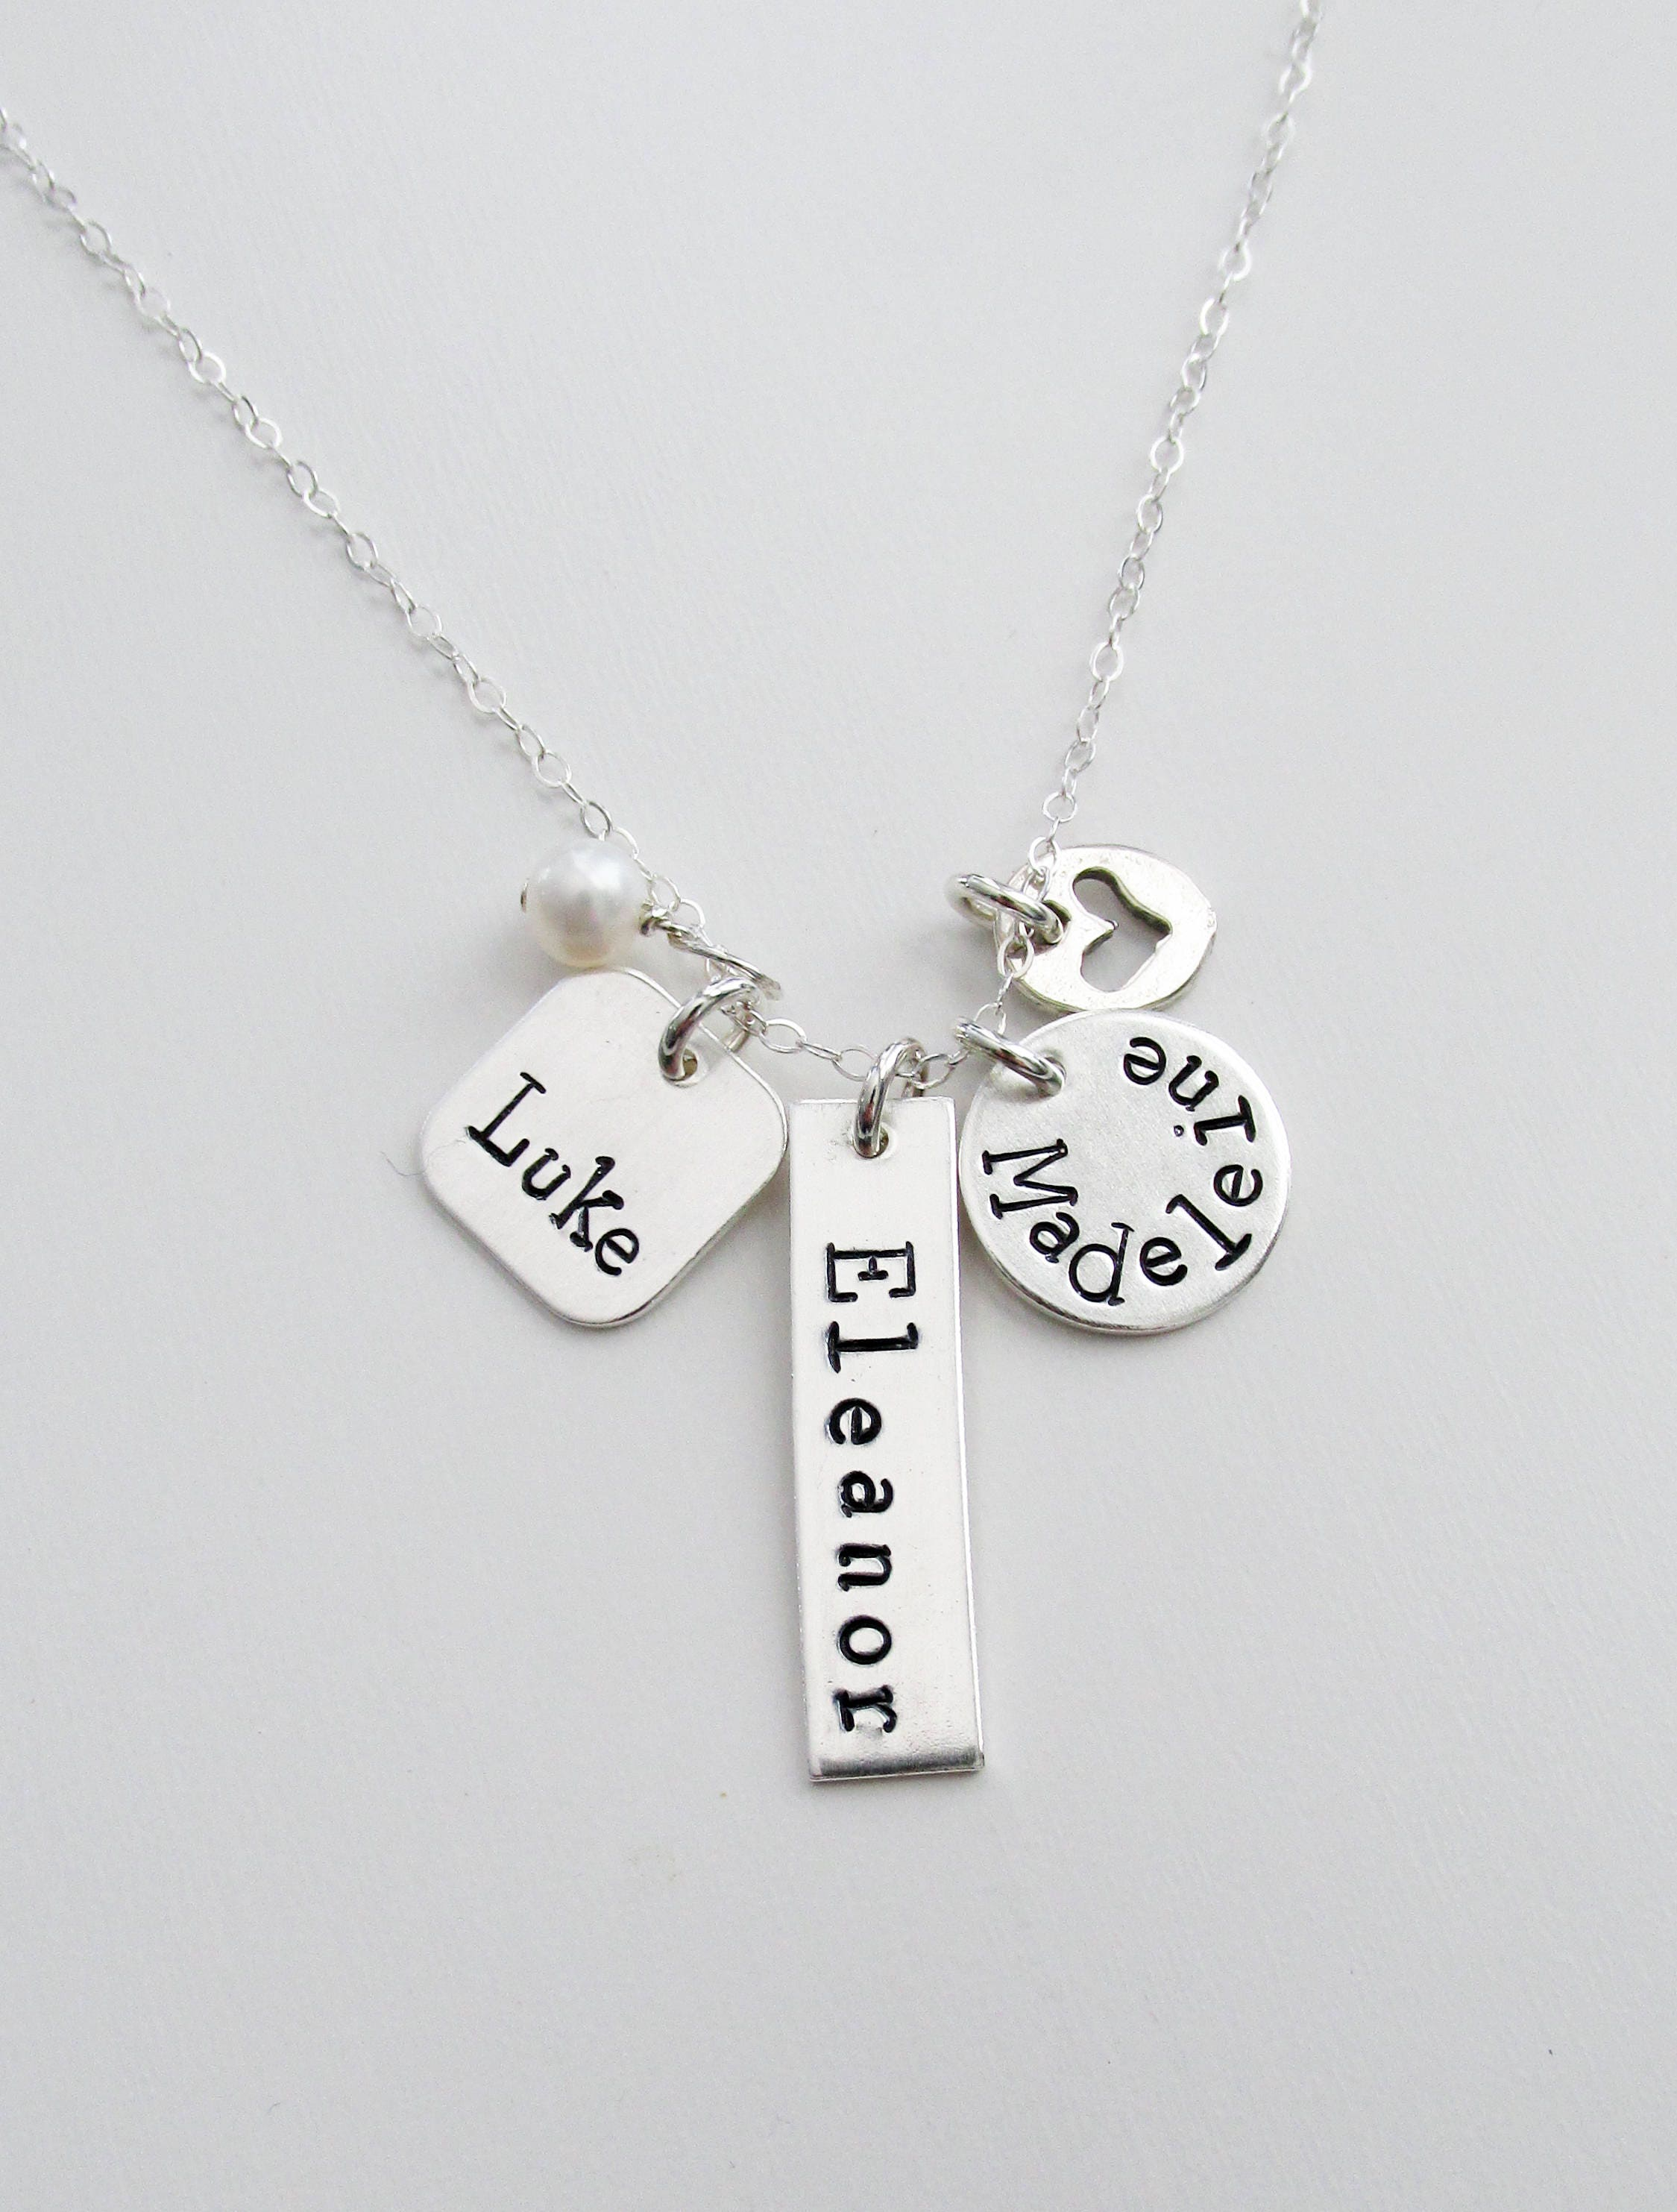 personalized charm necklace sterling silver mother jewelry mom